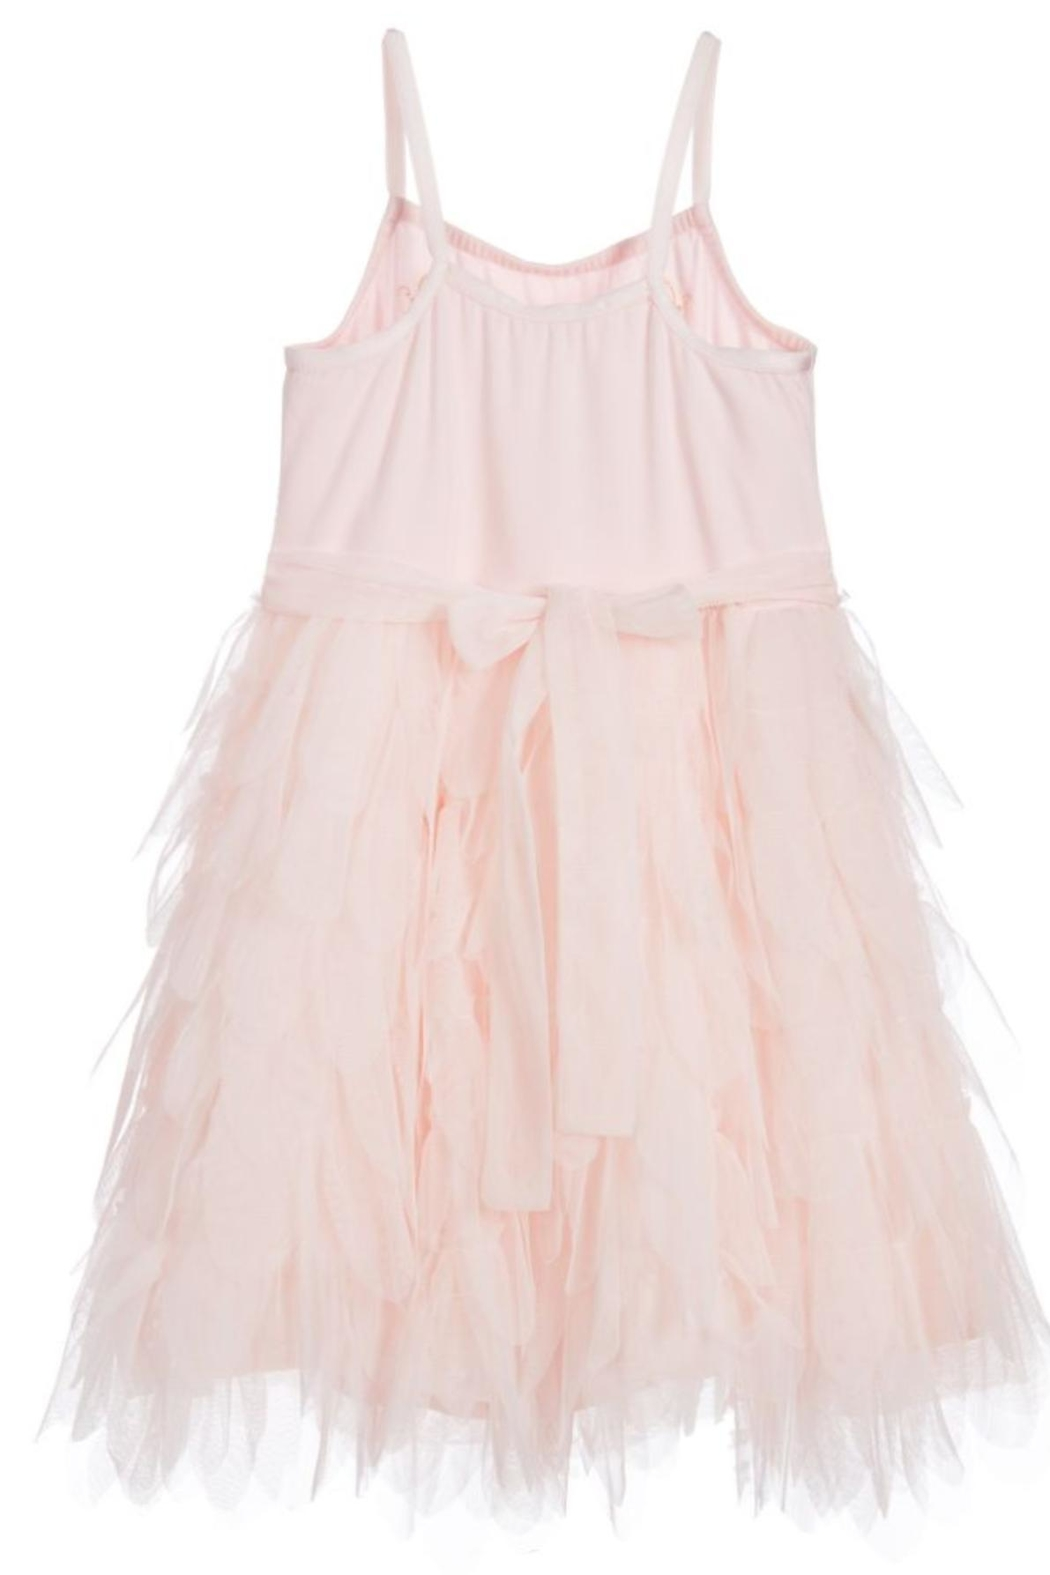 Biscotti Tulle Petals Dress - Side Cropped Image